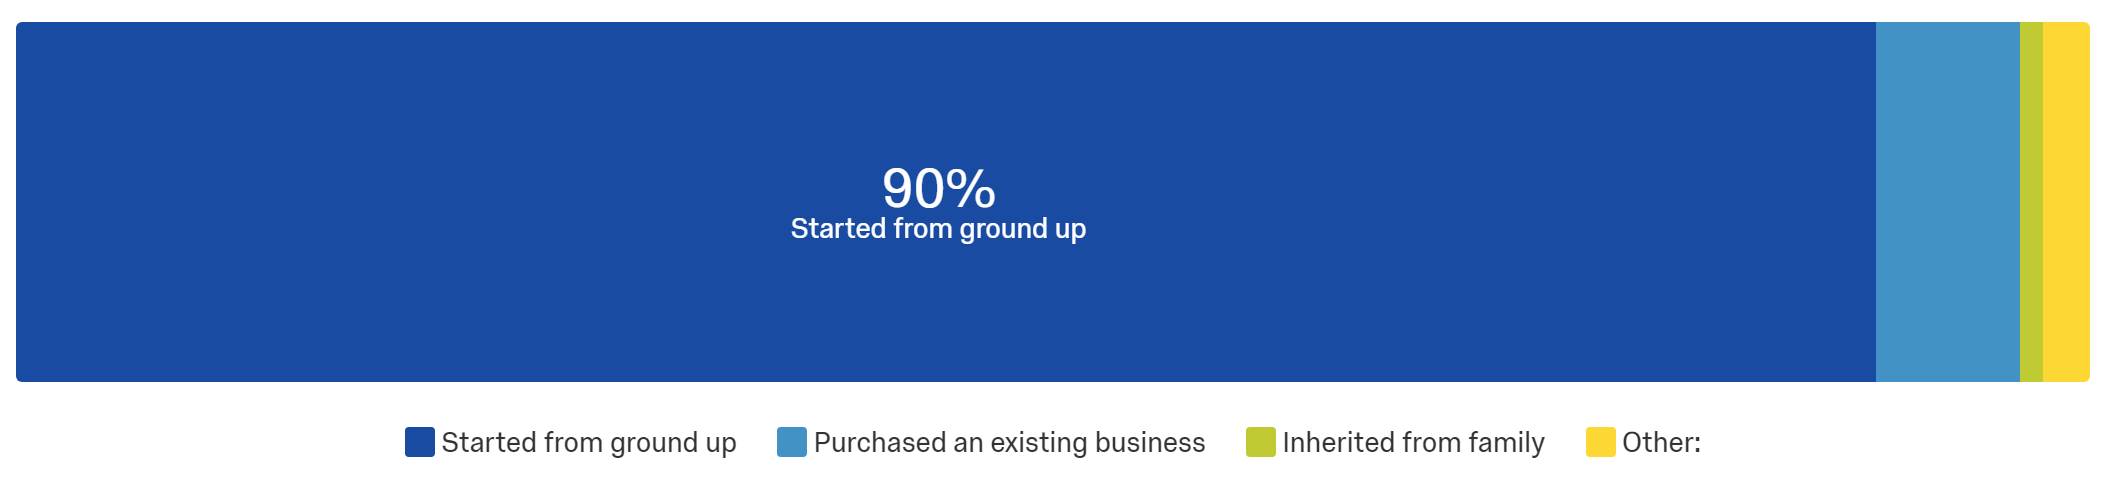 Insight #1: We found that 91% of migrant business owners started their business from ground up.   Implication: Many migrant business owners need to ensure they have all the right business and technical skills in managing a startup.   (Based on Q2.4 - How did you start your business?)